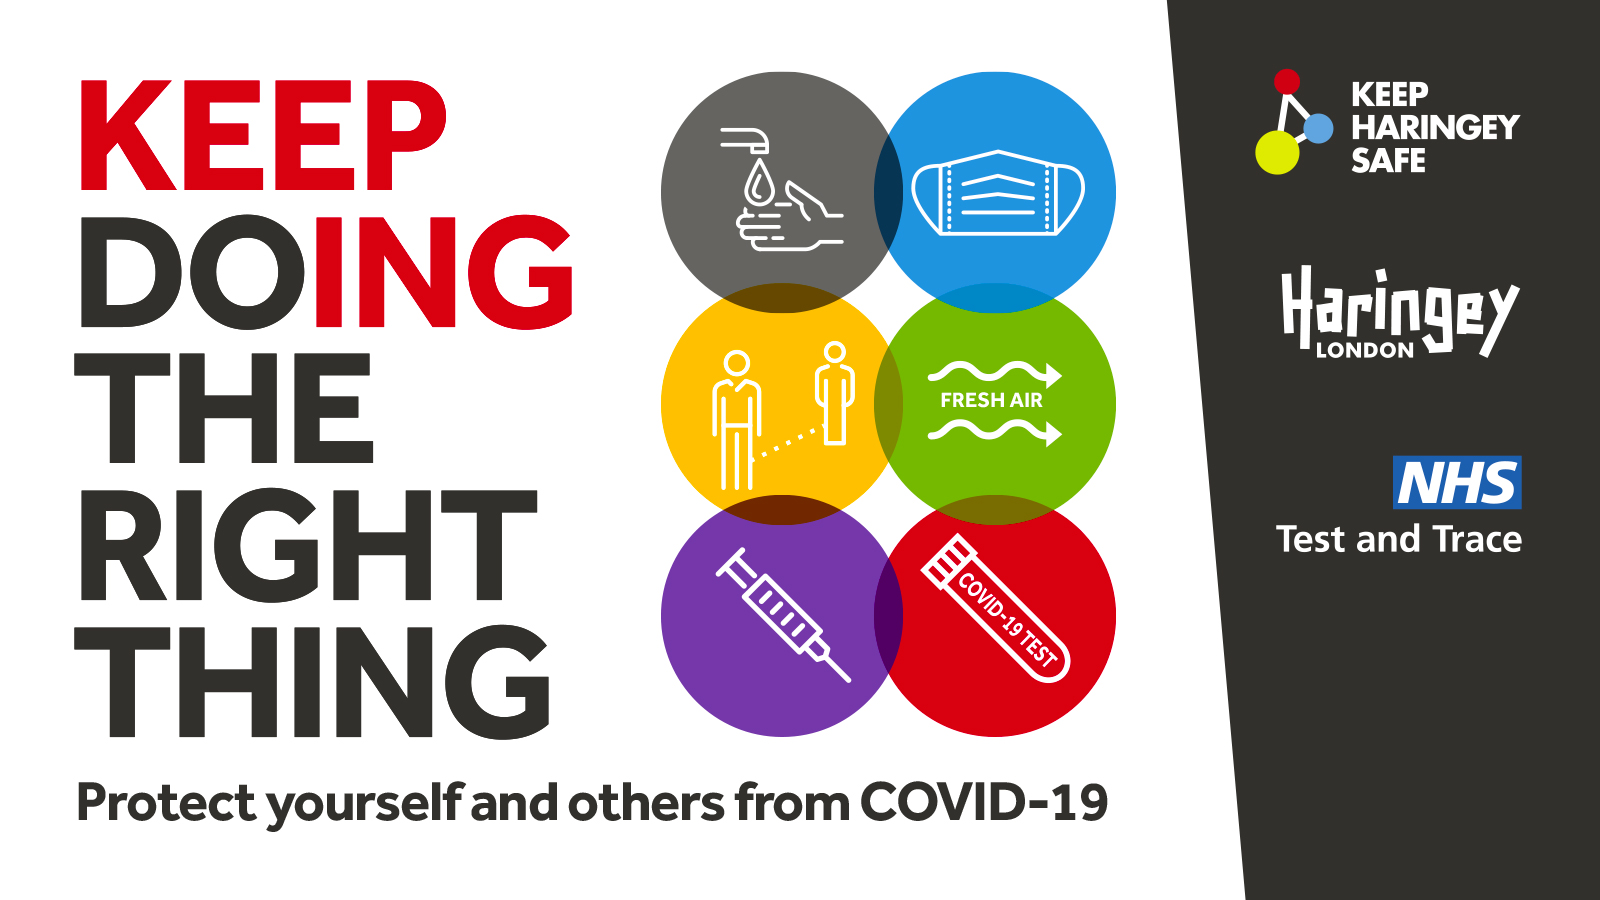 A graphic outlining the key ways that people can keep doing the right thing - washing hands, wearing a face covering, keeping distance, letting in fresh air, getting vaccinated and testing regularly for COVID-19.